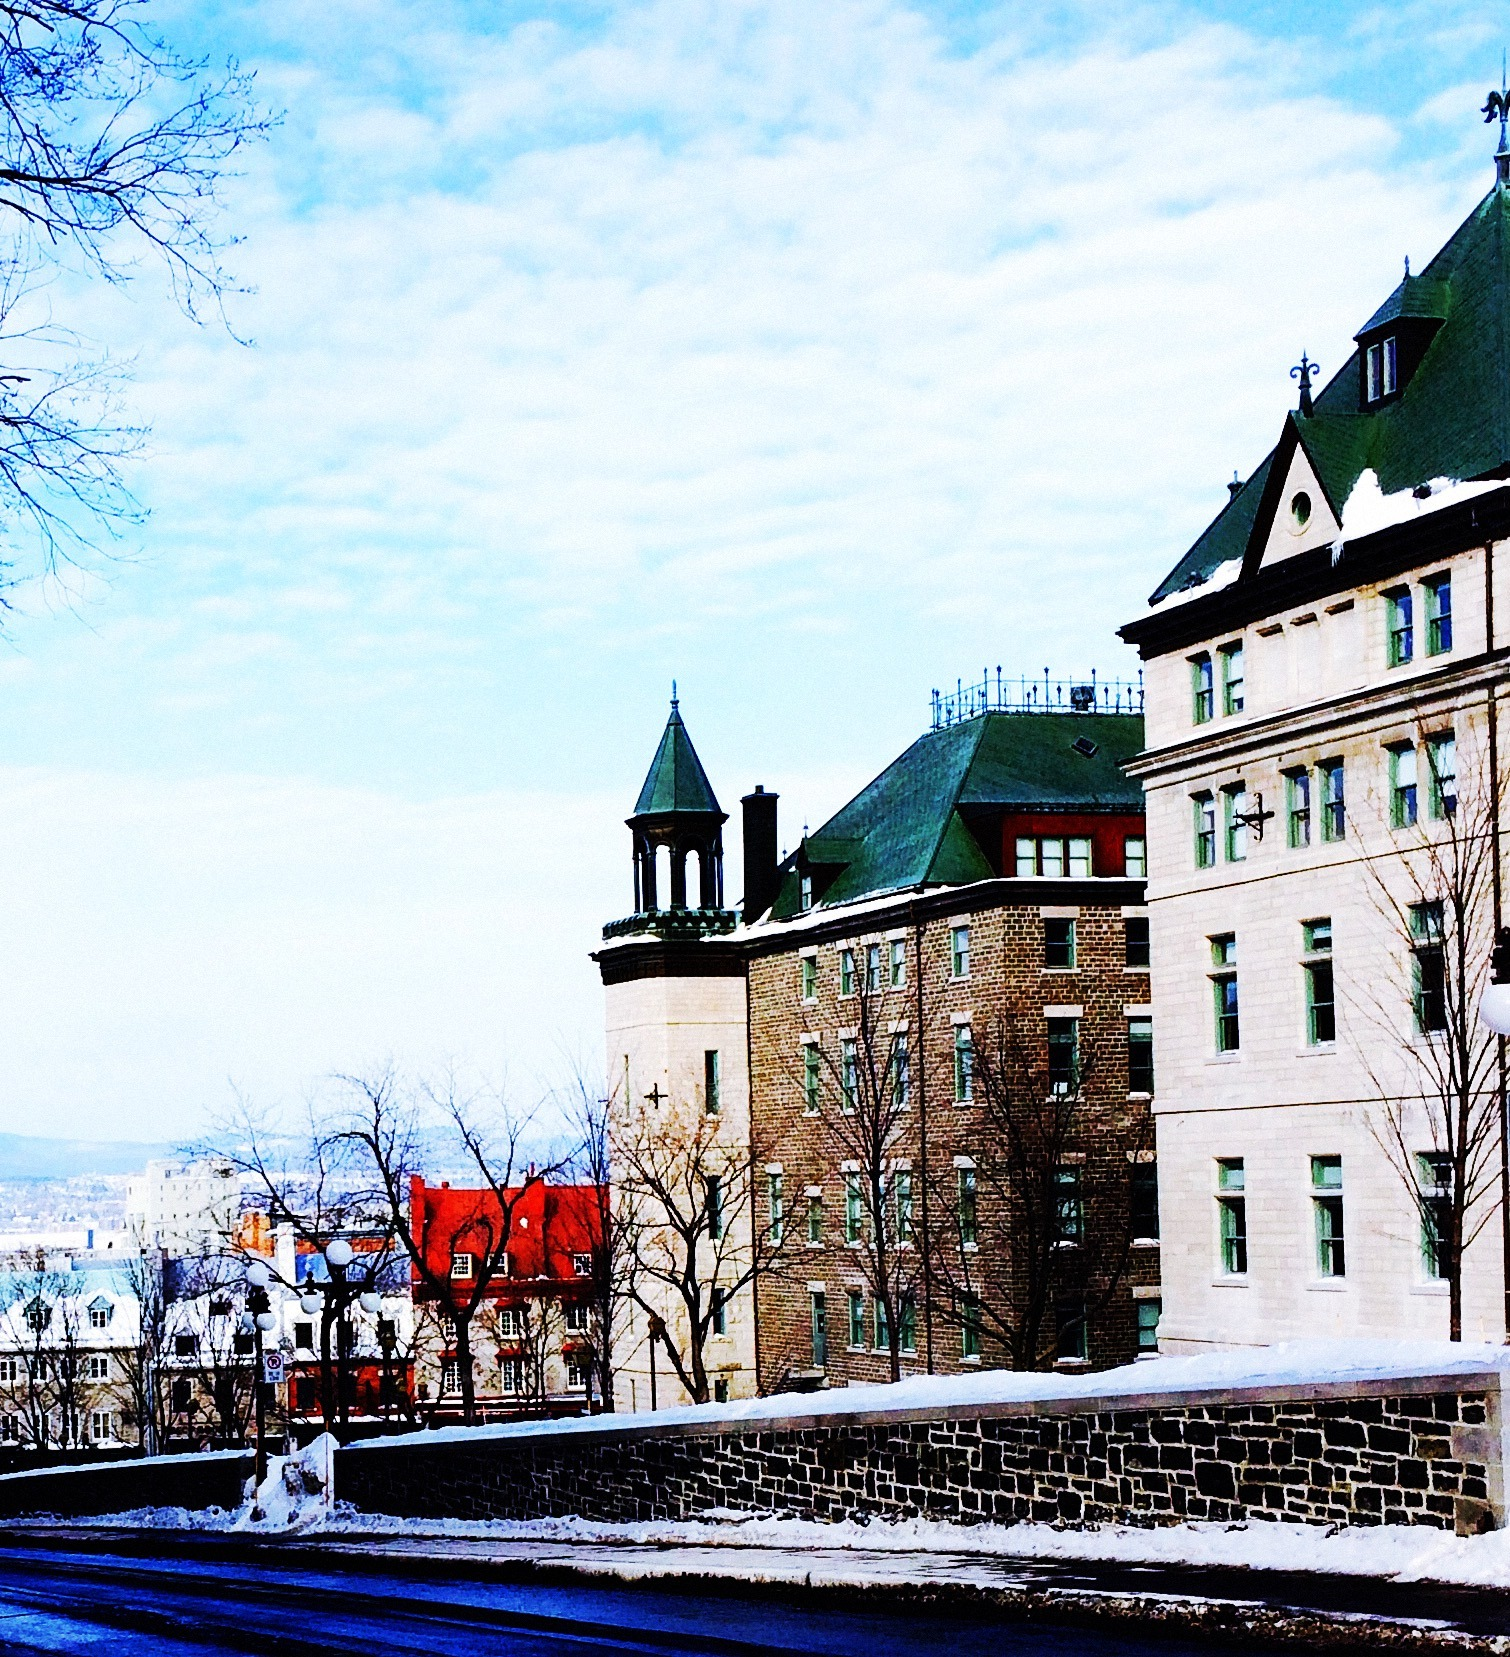 ©Quebec City by Dena T Bray